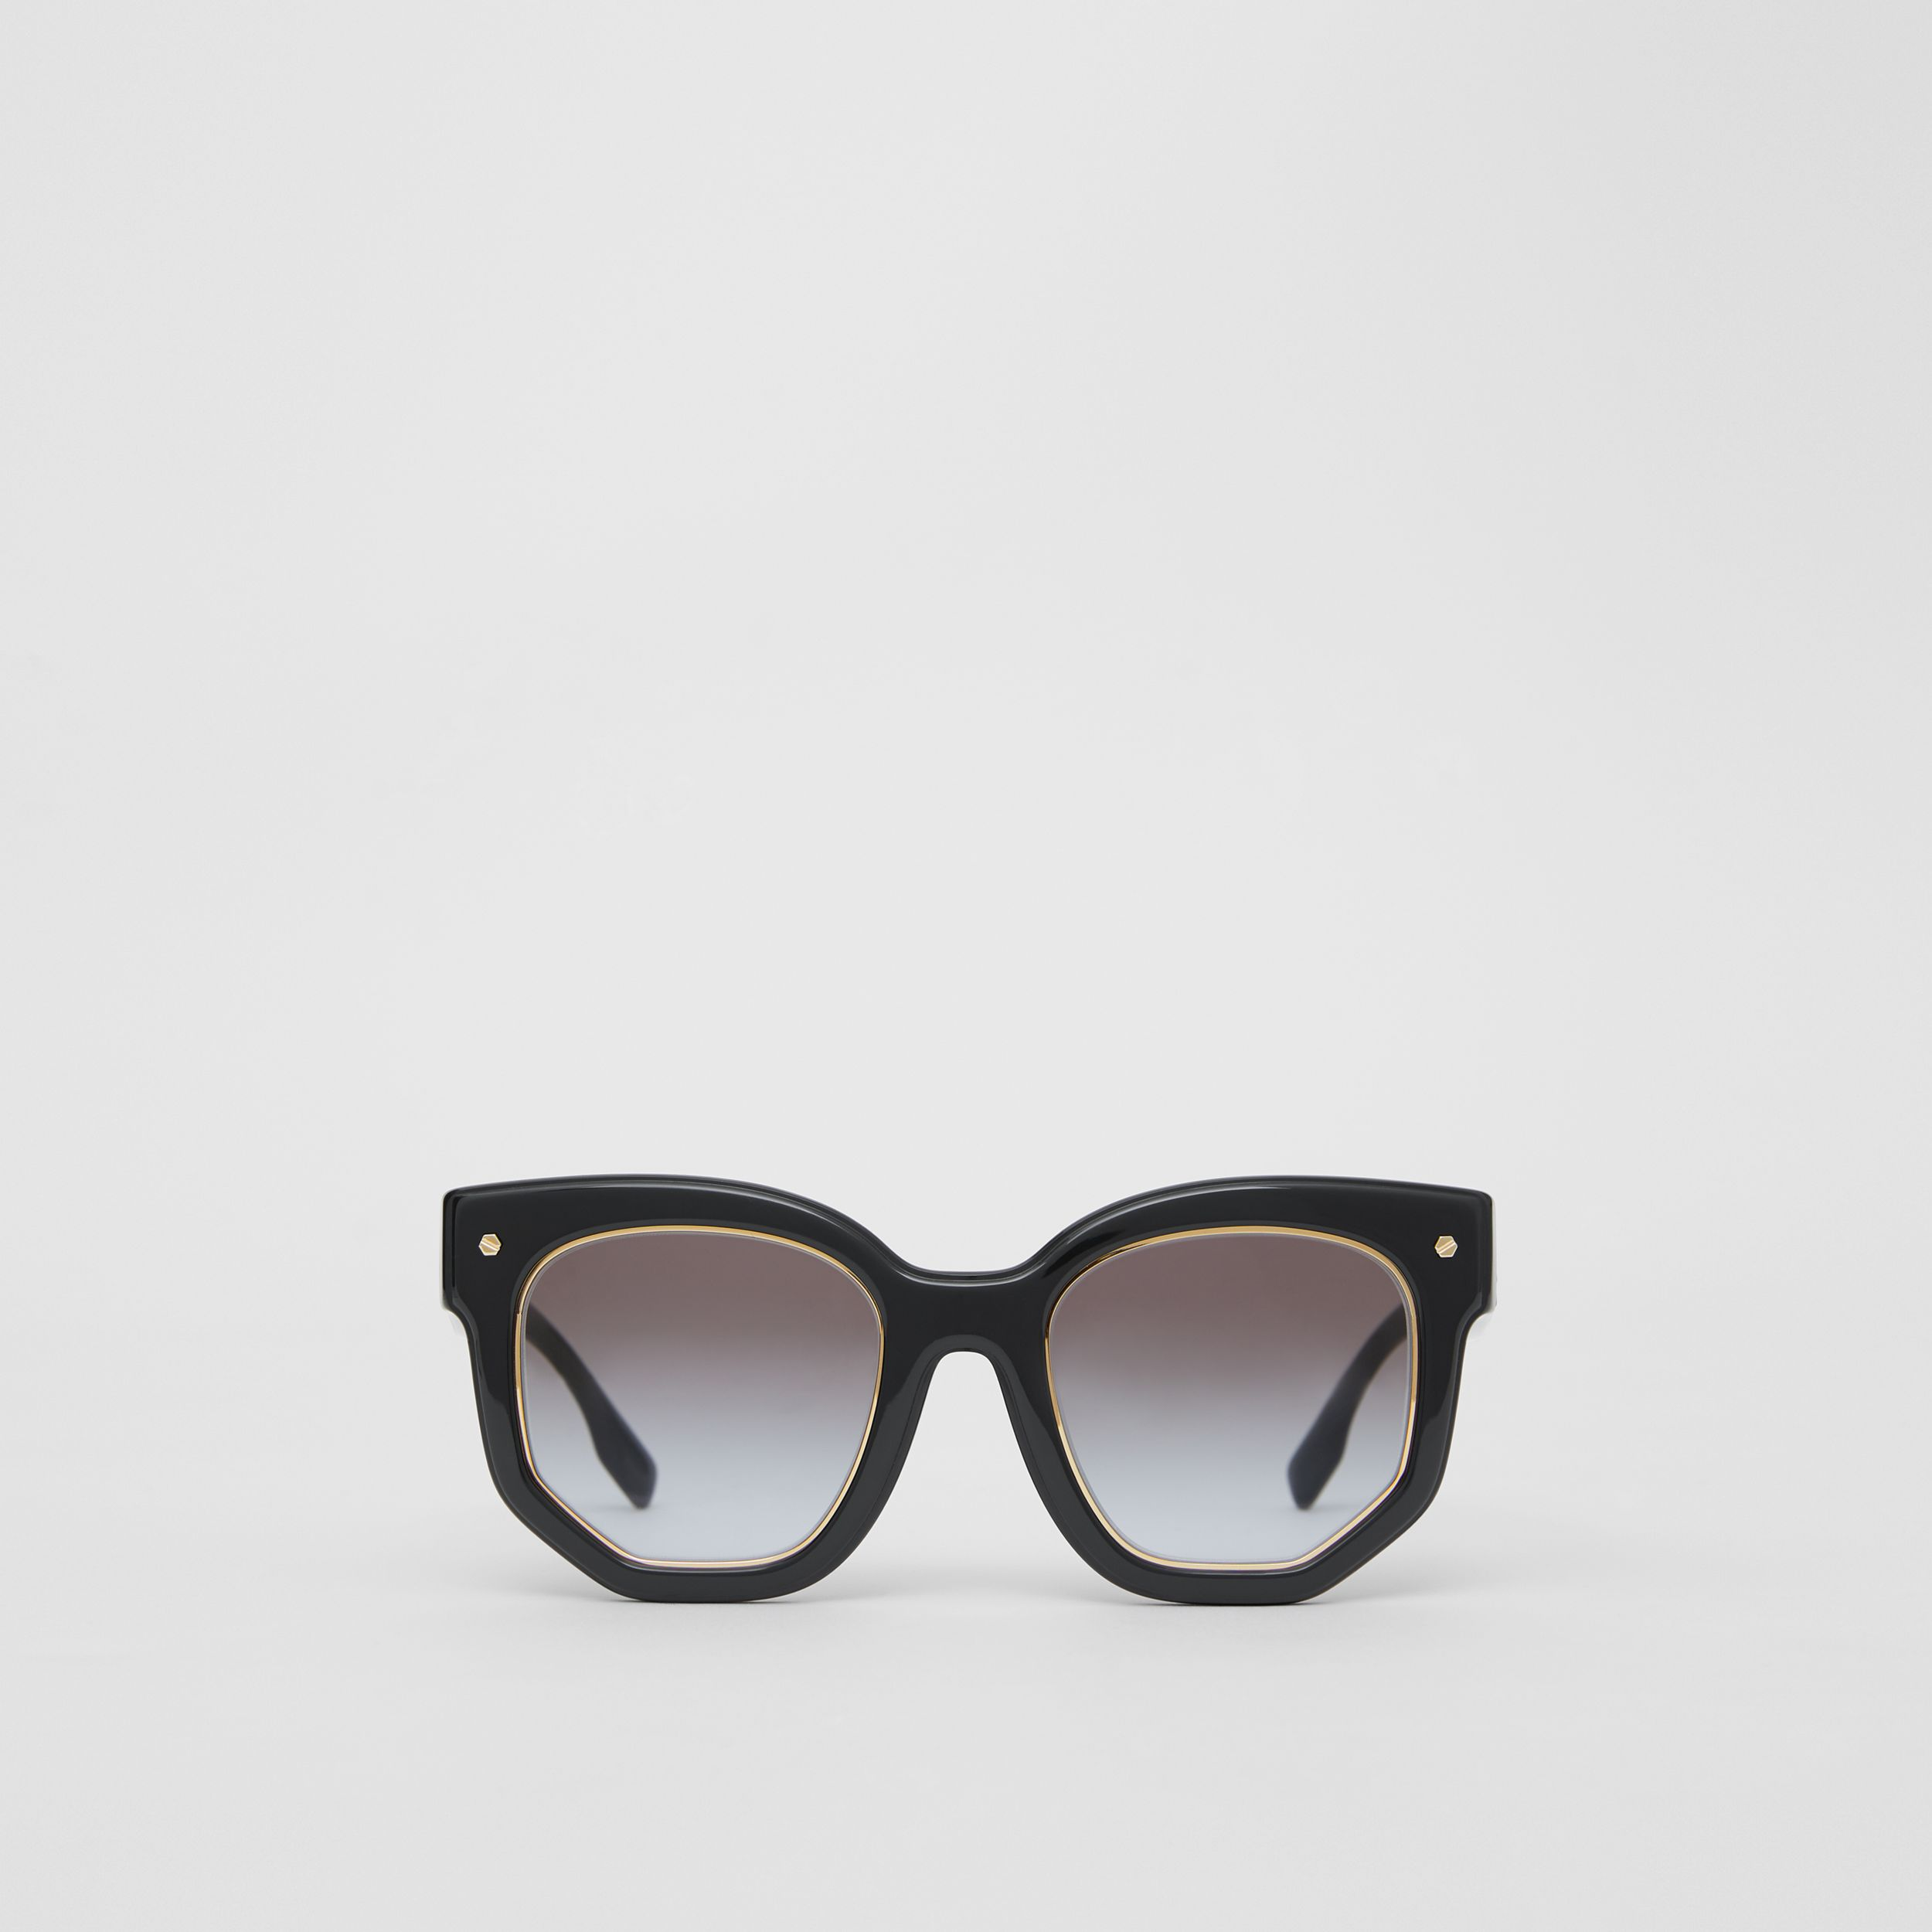 Geometric Frame Sunglasses in Black - Women | Burberry - 1